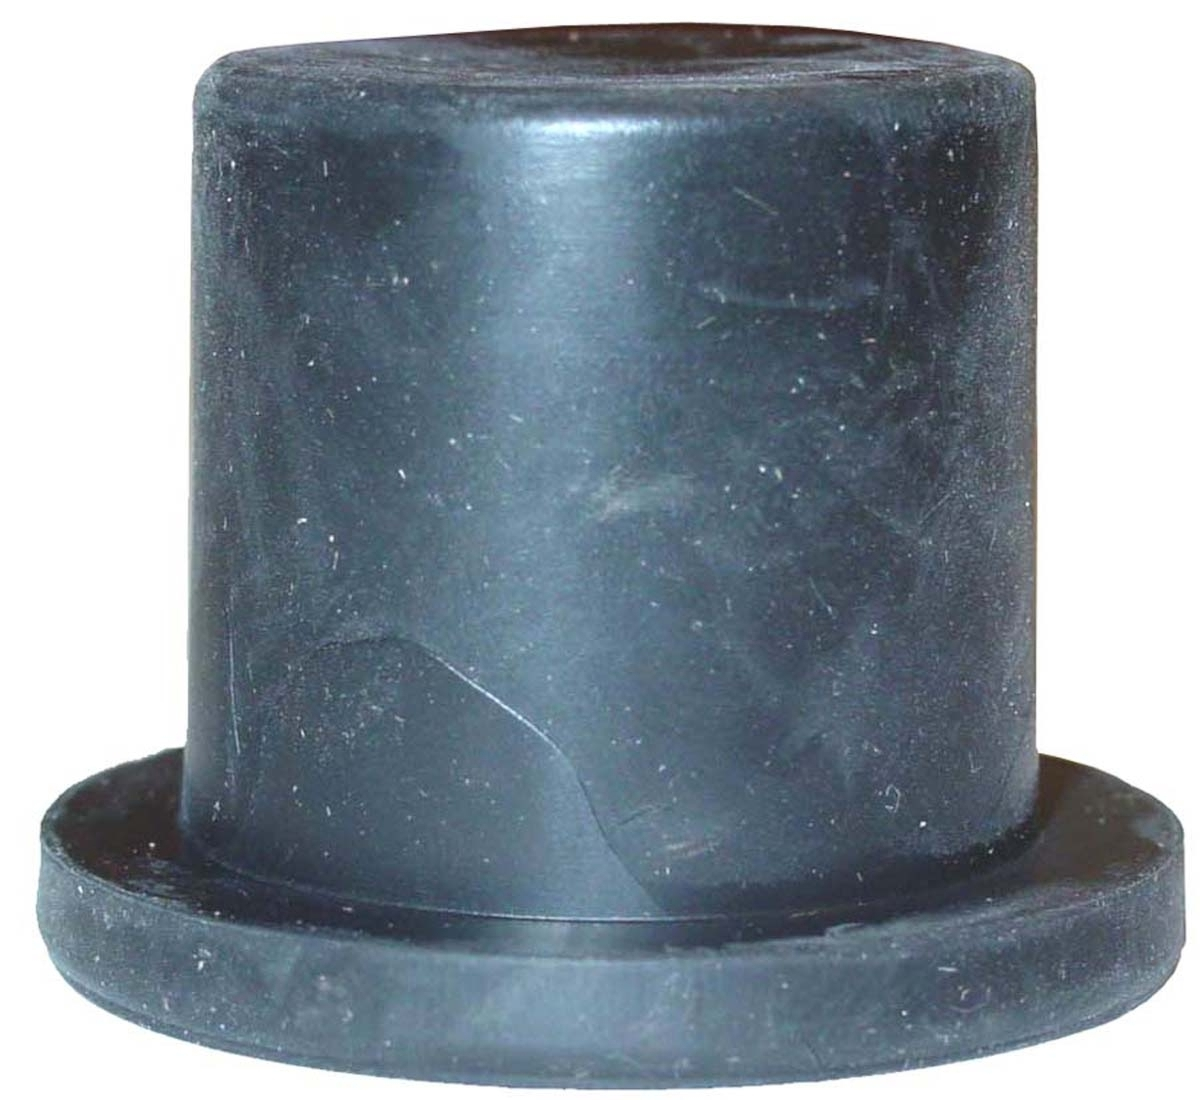 RUBBER BUSHING (TALL) FOR BATTERY BOX LIDS